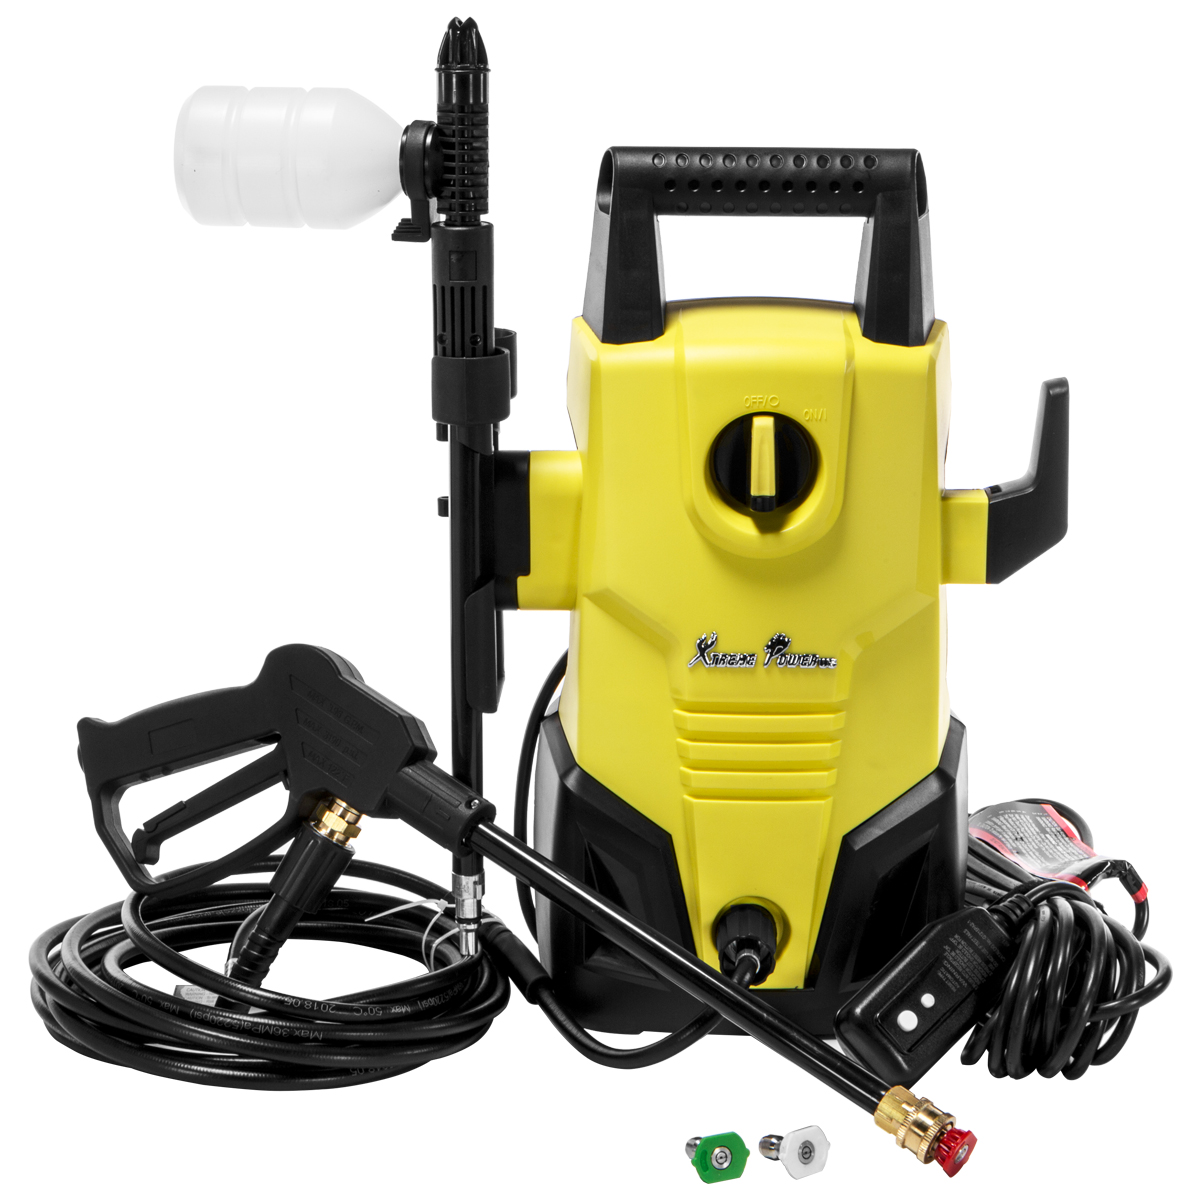 XtremepowerUS Electric 1300 PSI 1.2 GPM Compact Lightweight Pressure Washer With Hose Soap Dispenser